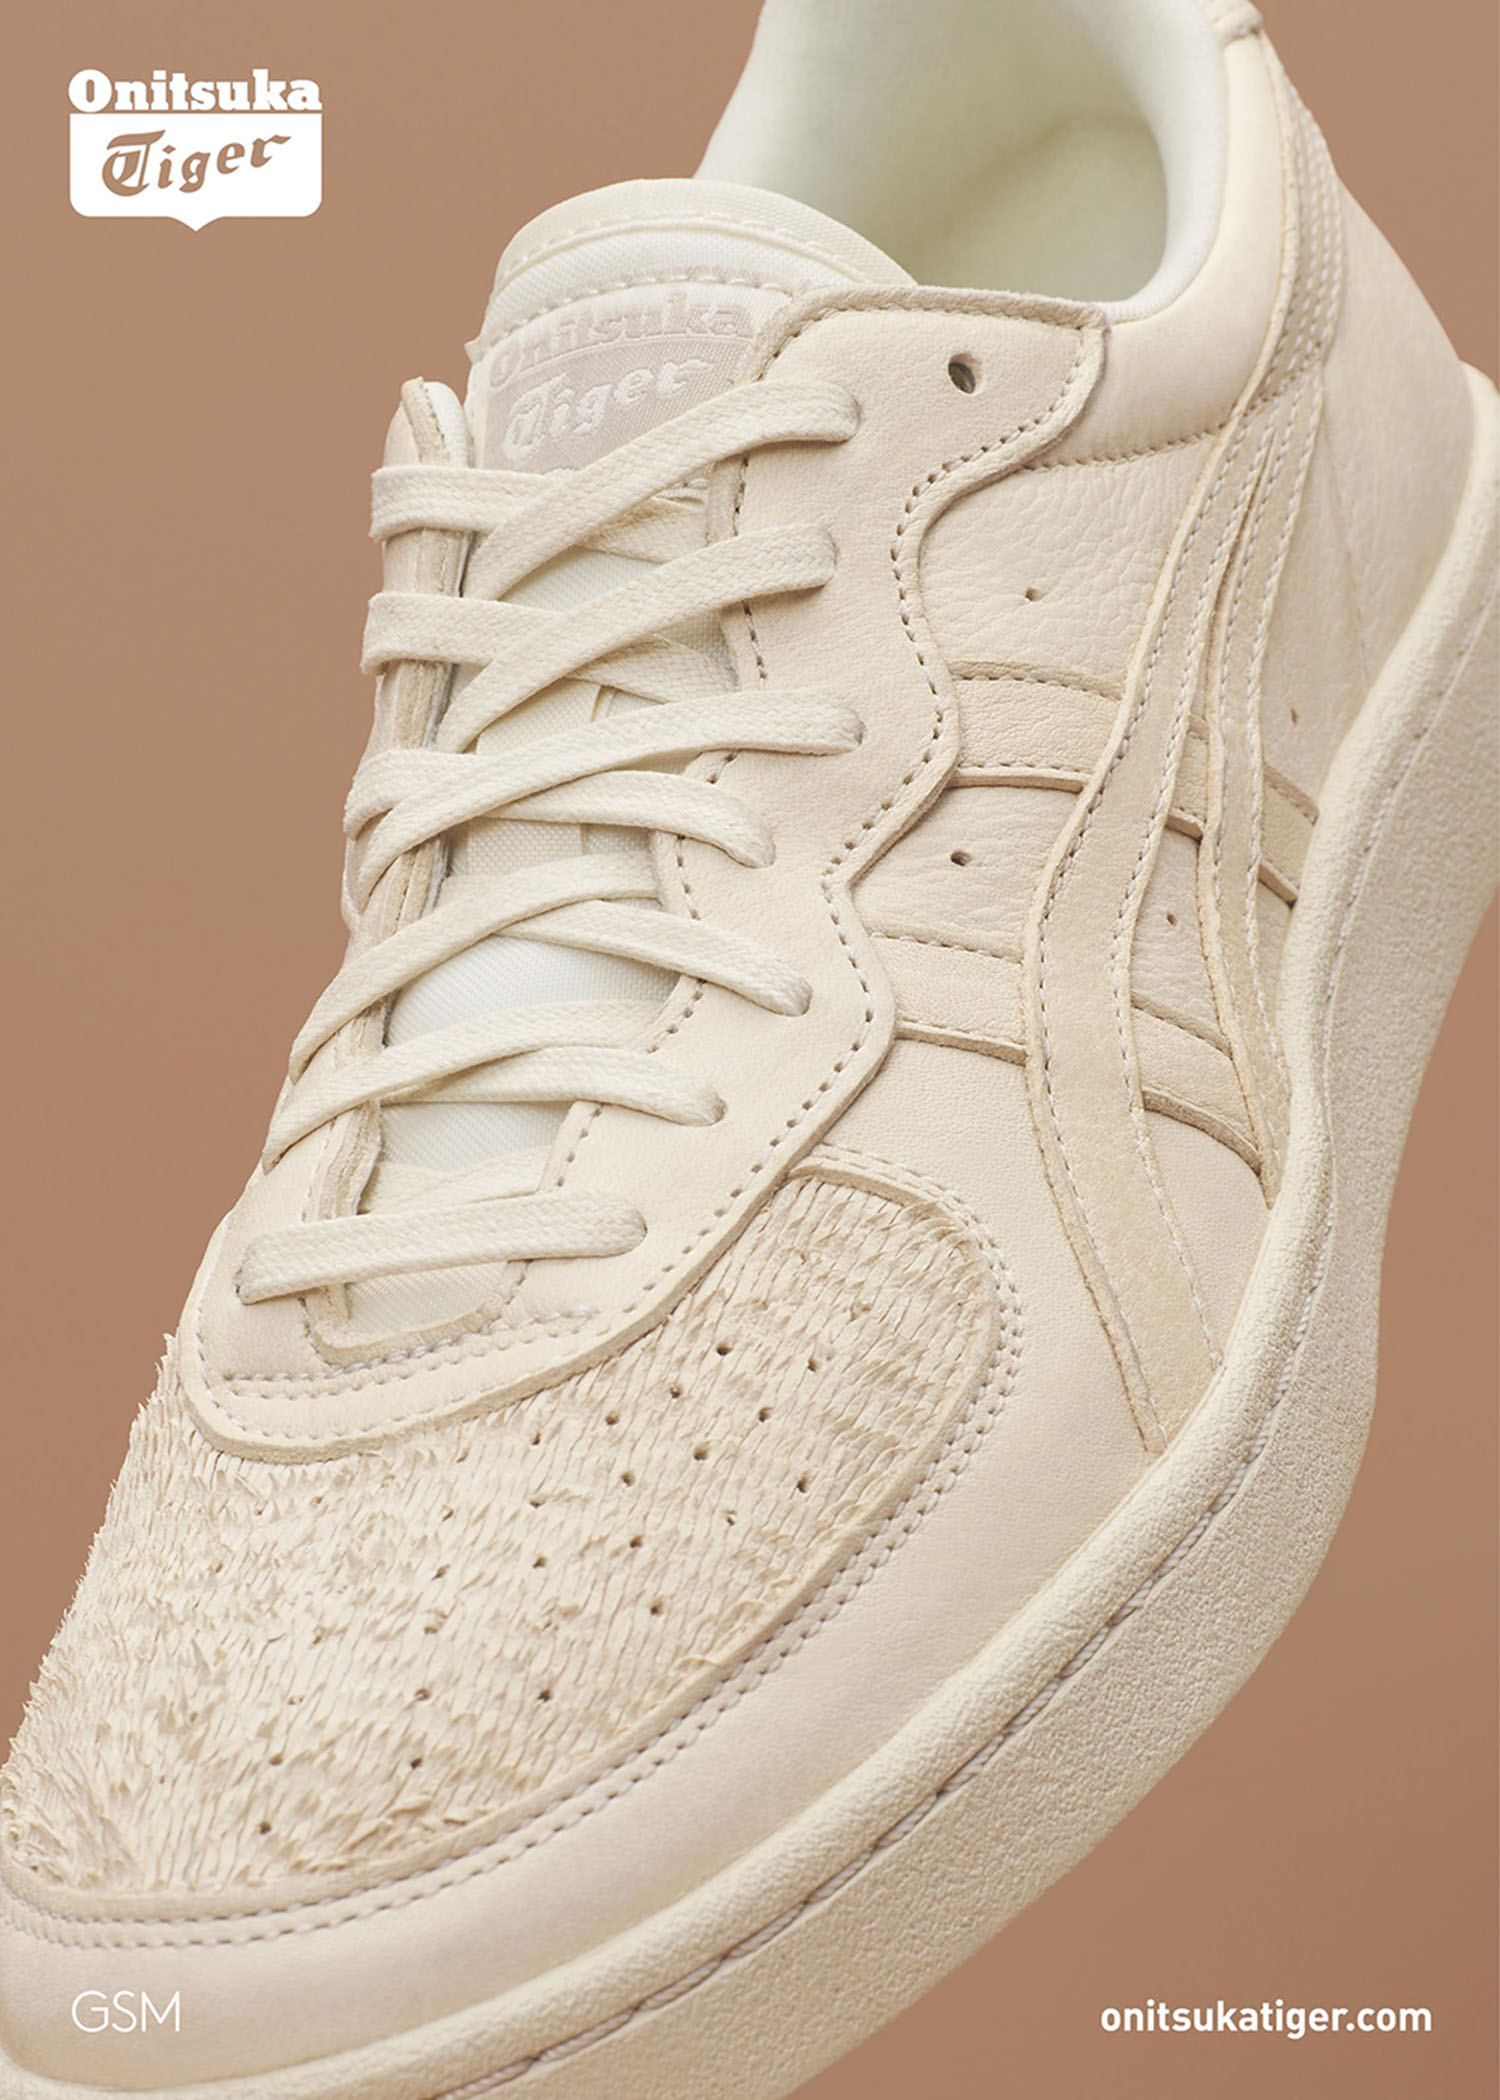 wholesale dealer 80436 7be19 Onitsuka Tiger Goes for Metal-Free Leather This Time Around